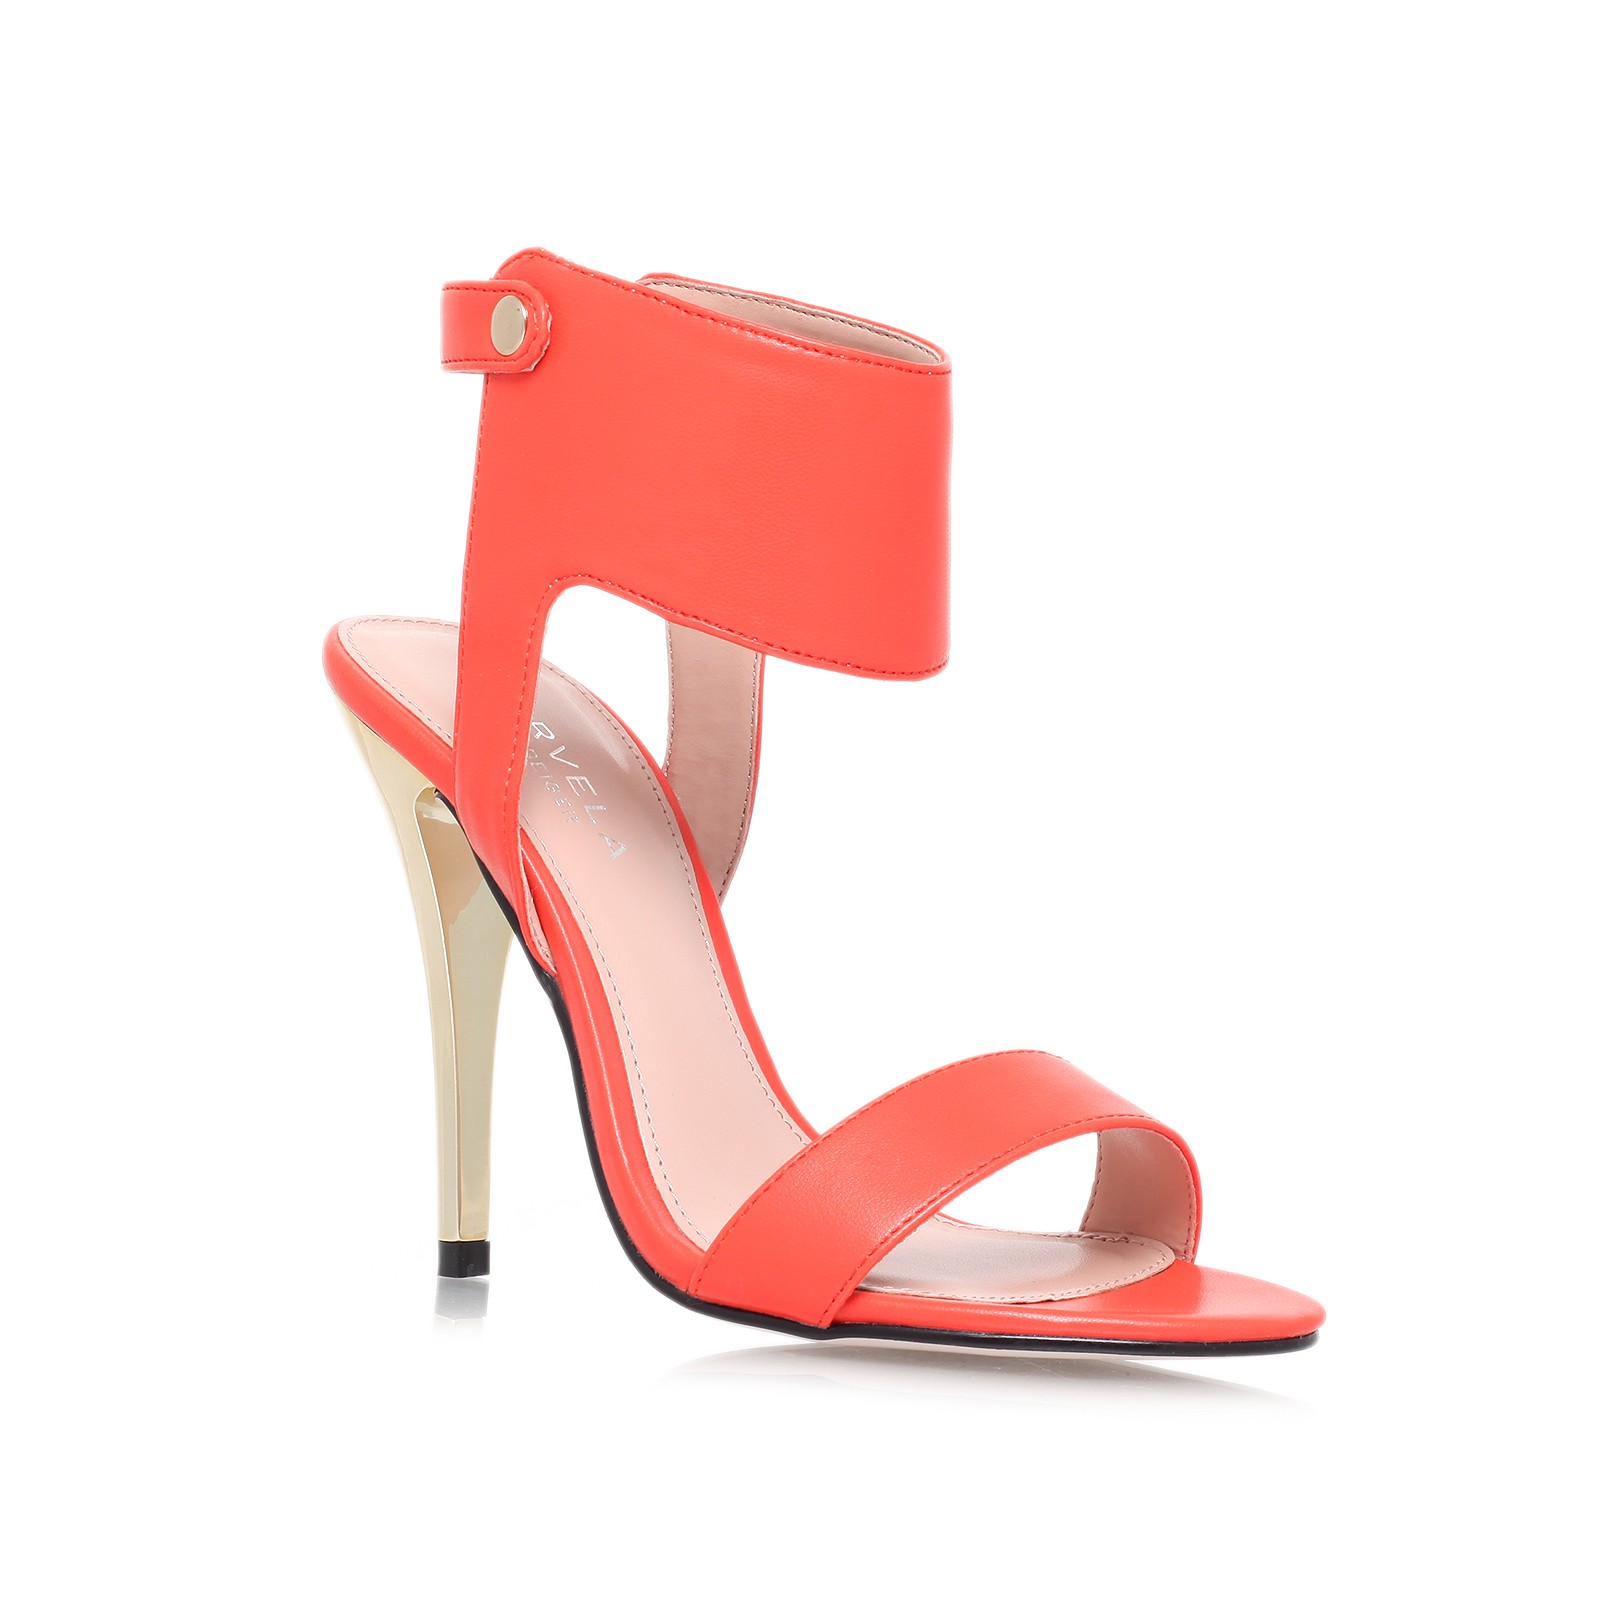 Kurt Geiger |  JESSICA Orange High Heel Sandals by Carvela Kurt Geiger